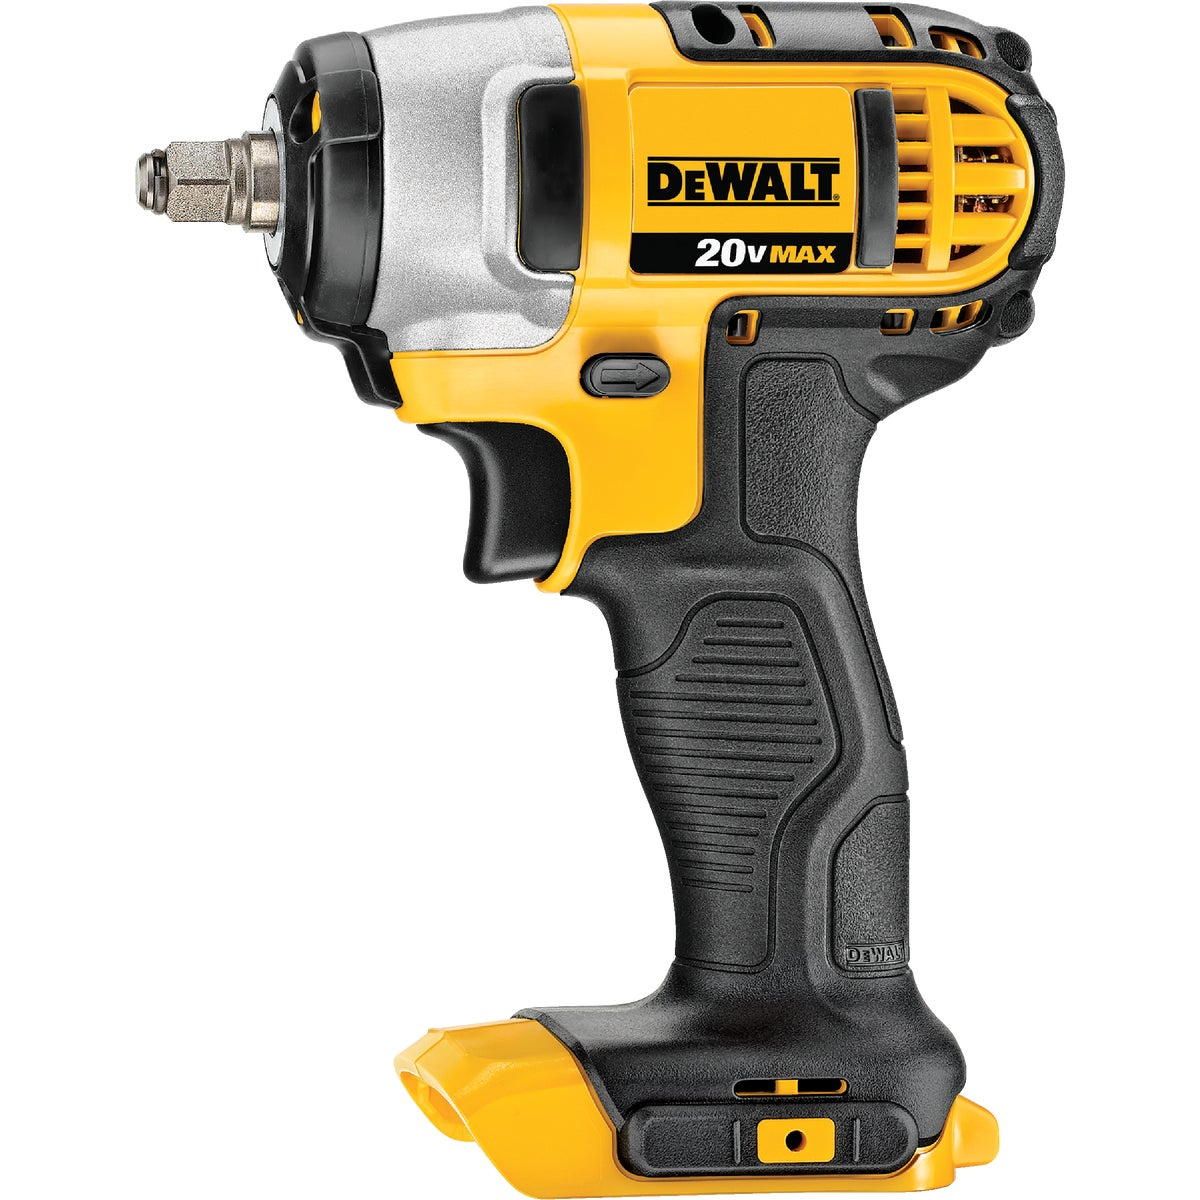 20V BARE IMPACT WRENCH - DCF883B by DeWalt